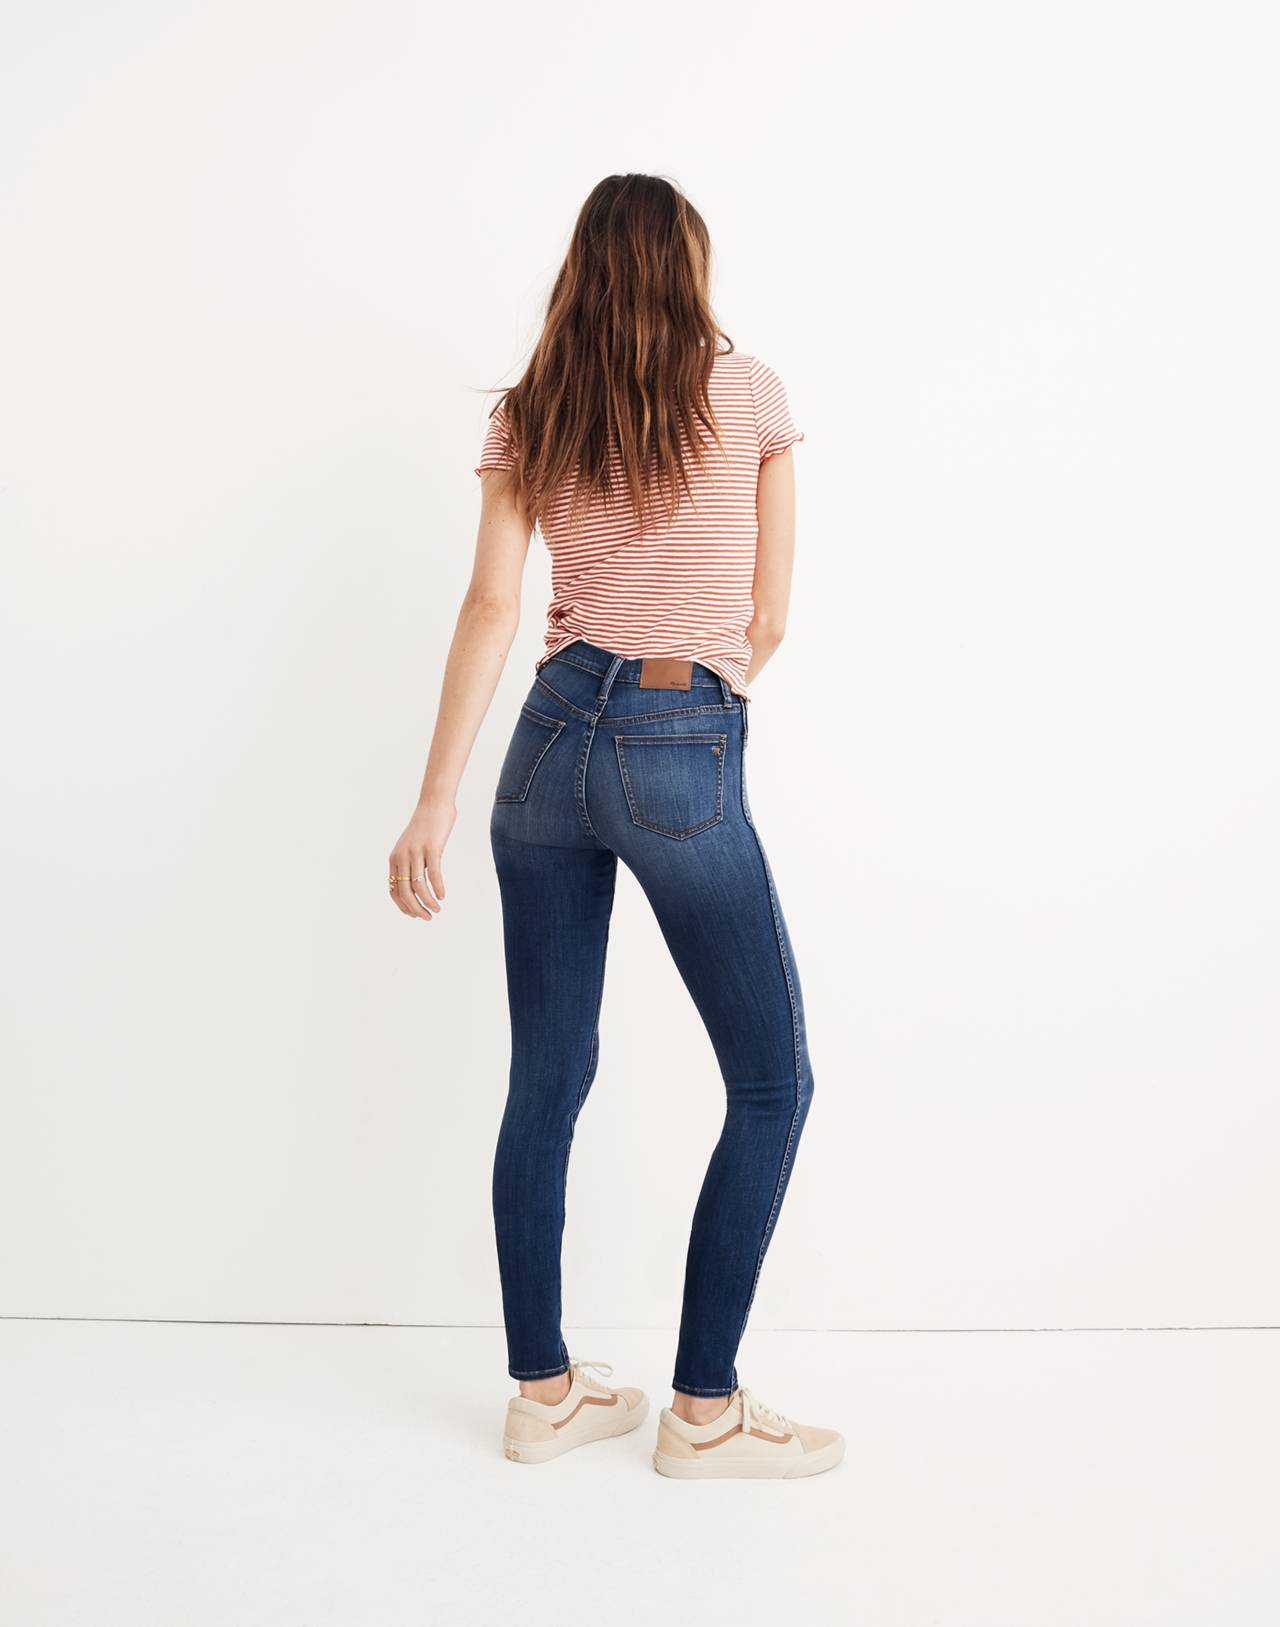 "10"" High-Rise Skinny Jeans in Danny Wash: Tencel™ Edition in danny image 3"